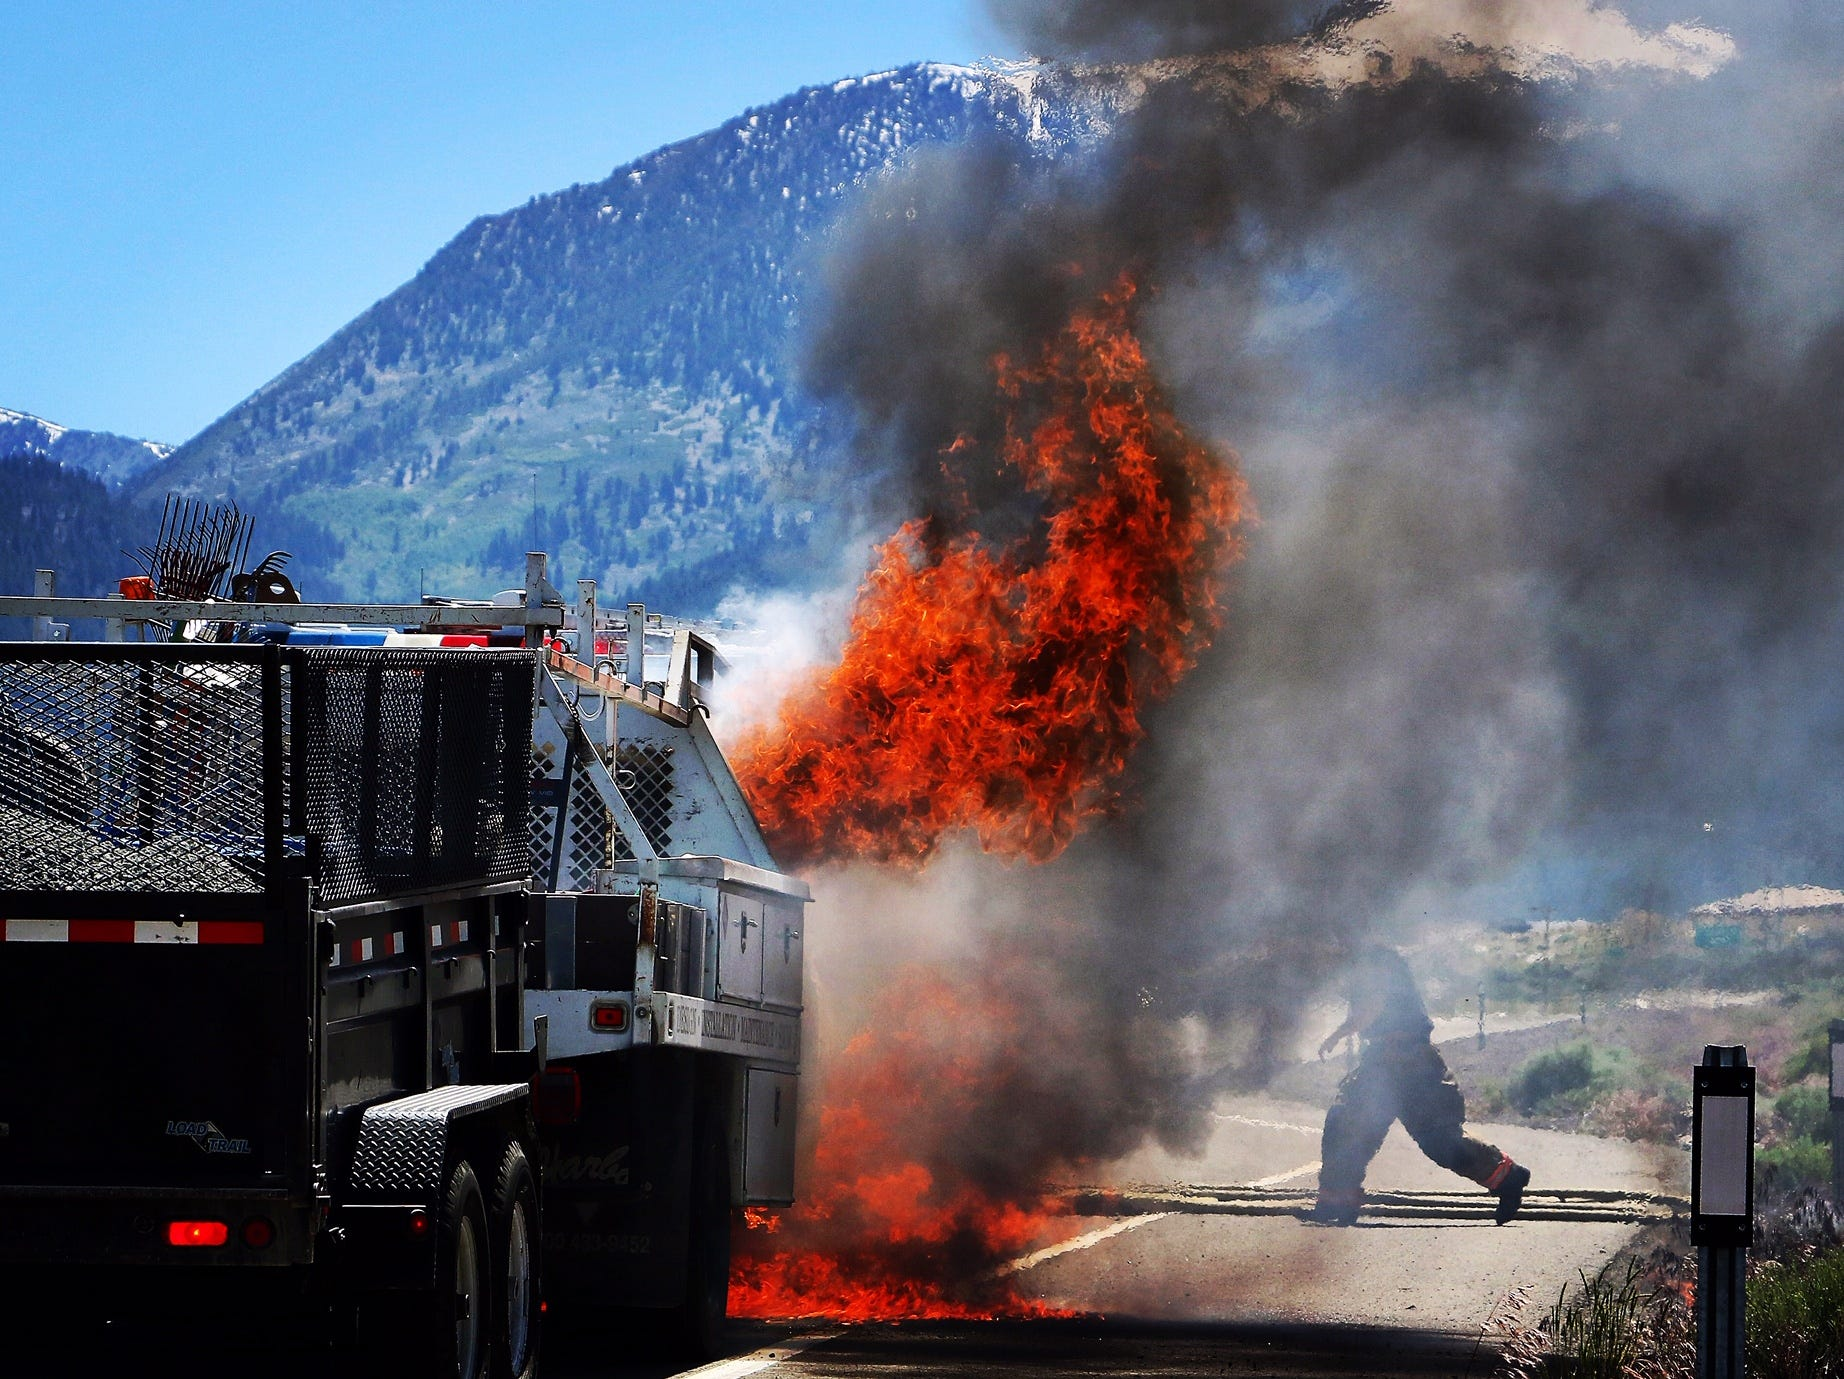 A vehicle catches on fire on the Mt. Rose Highway on June 13, 2018.